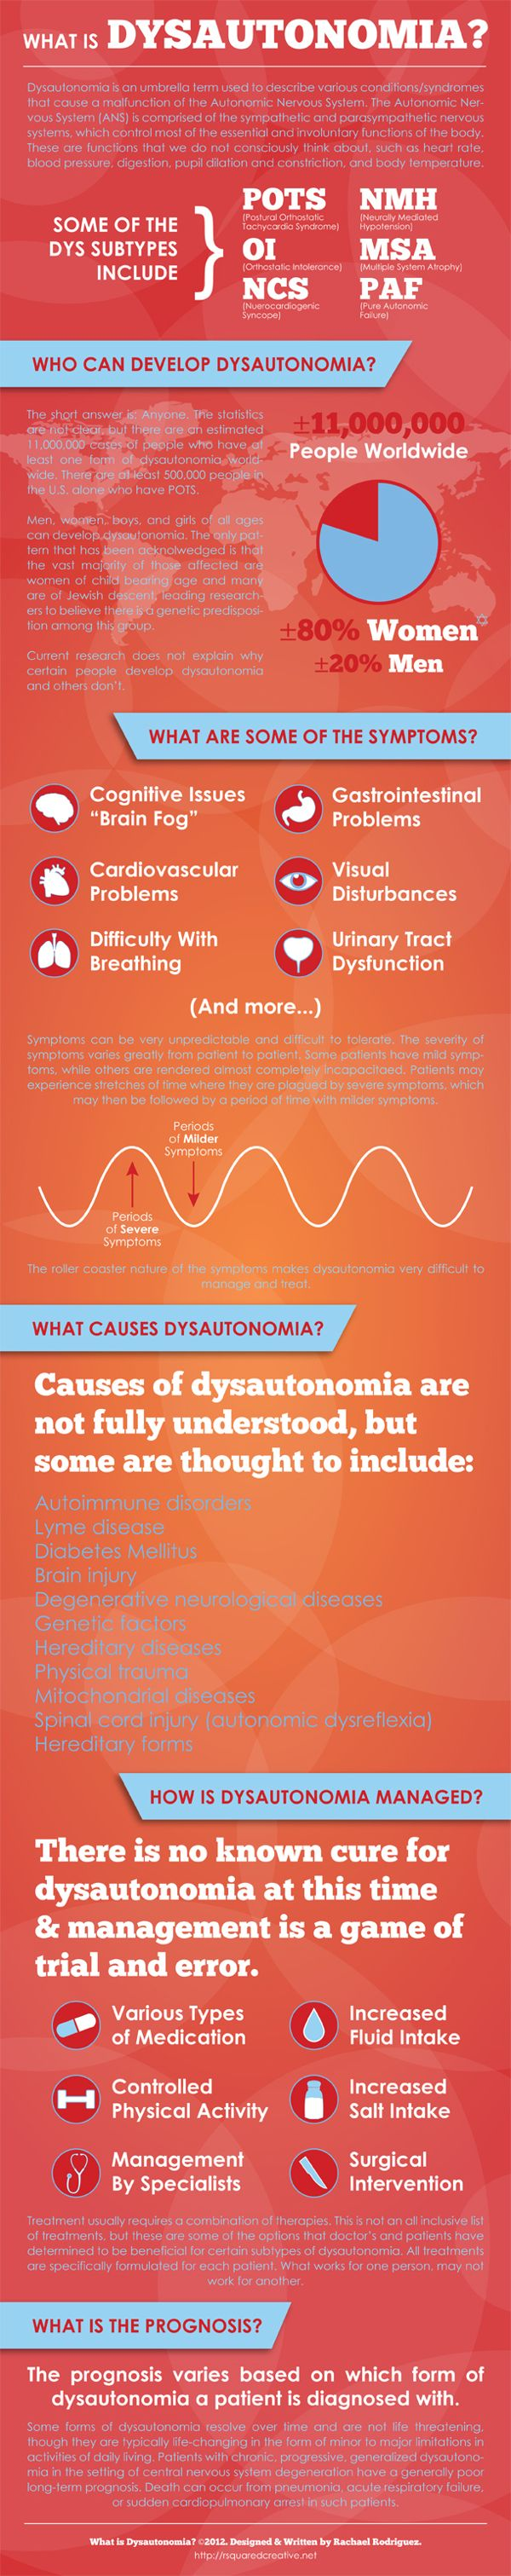 Dysautonomia Overview [oh great, another disorder I could have. I propose that this is a bullshit diagnosis made up by the medical and pharmaceutical industry to pull some more cash in.]